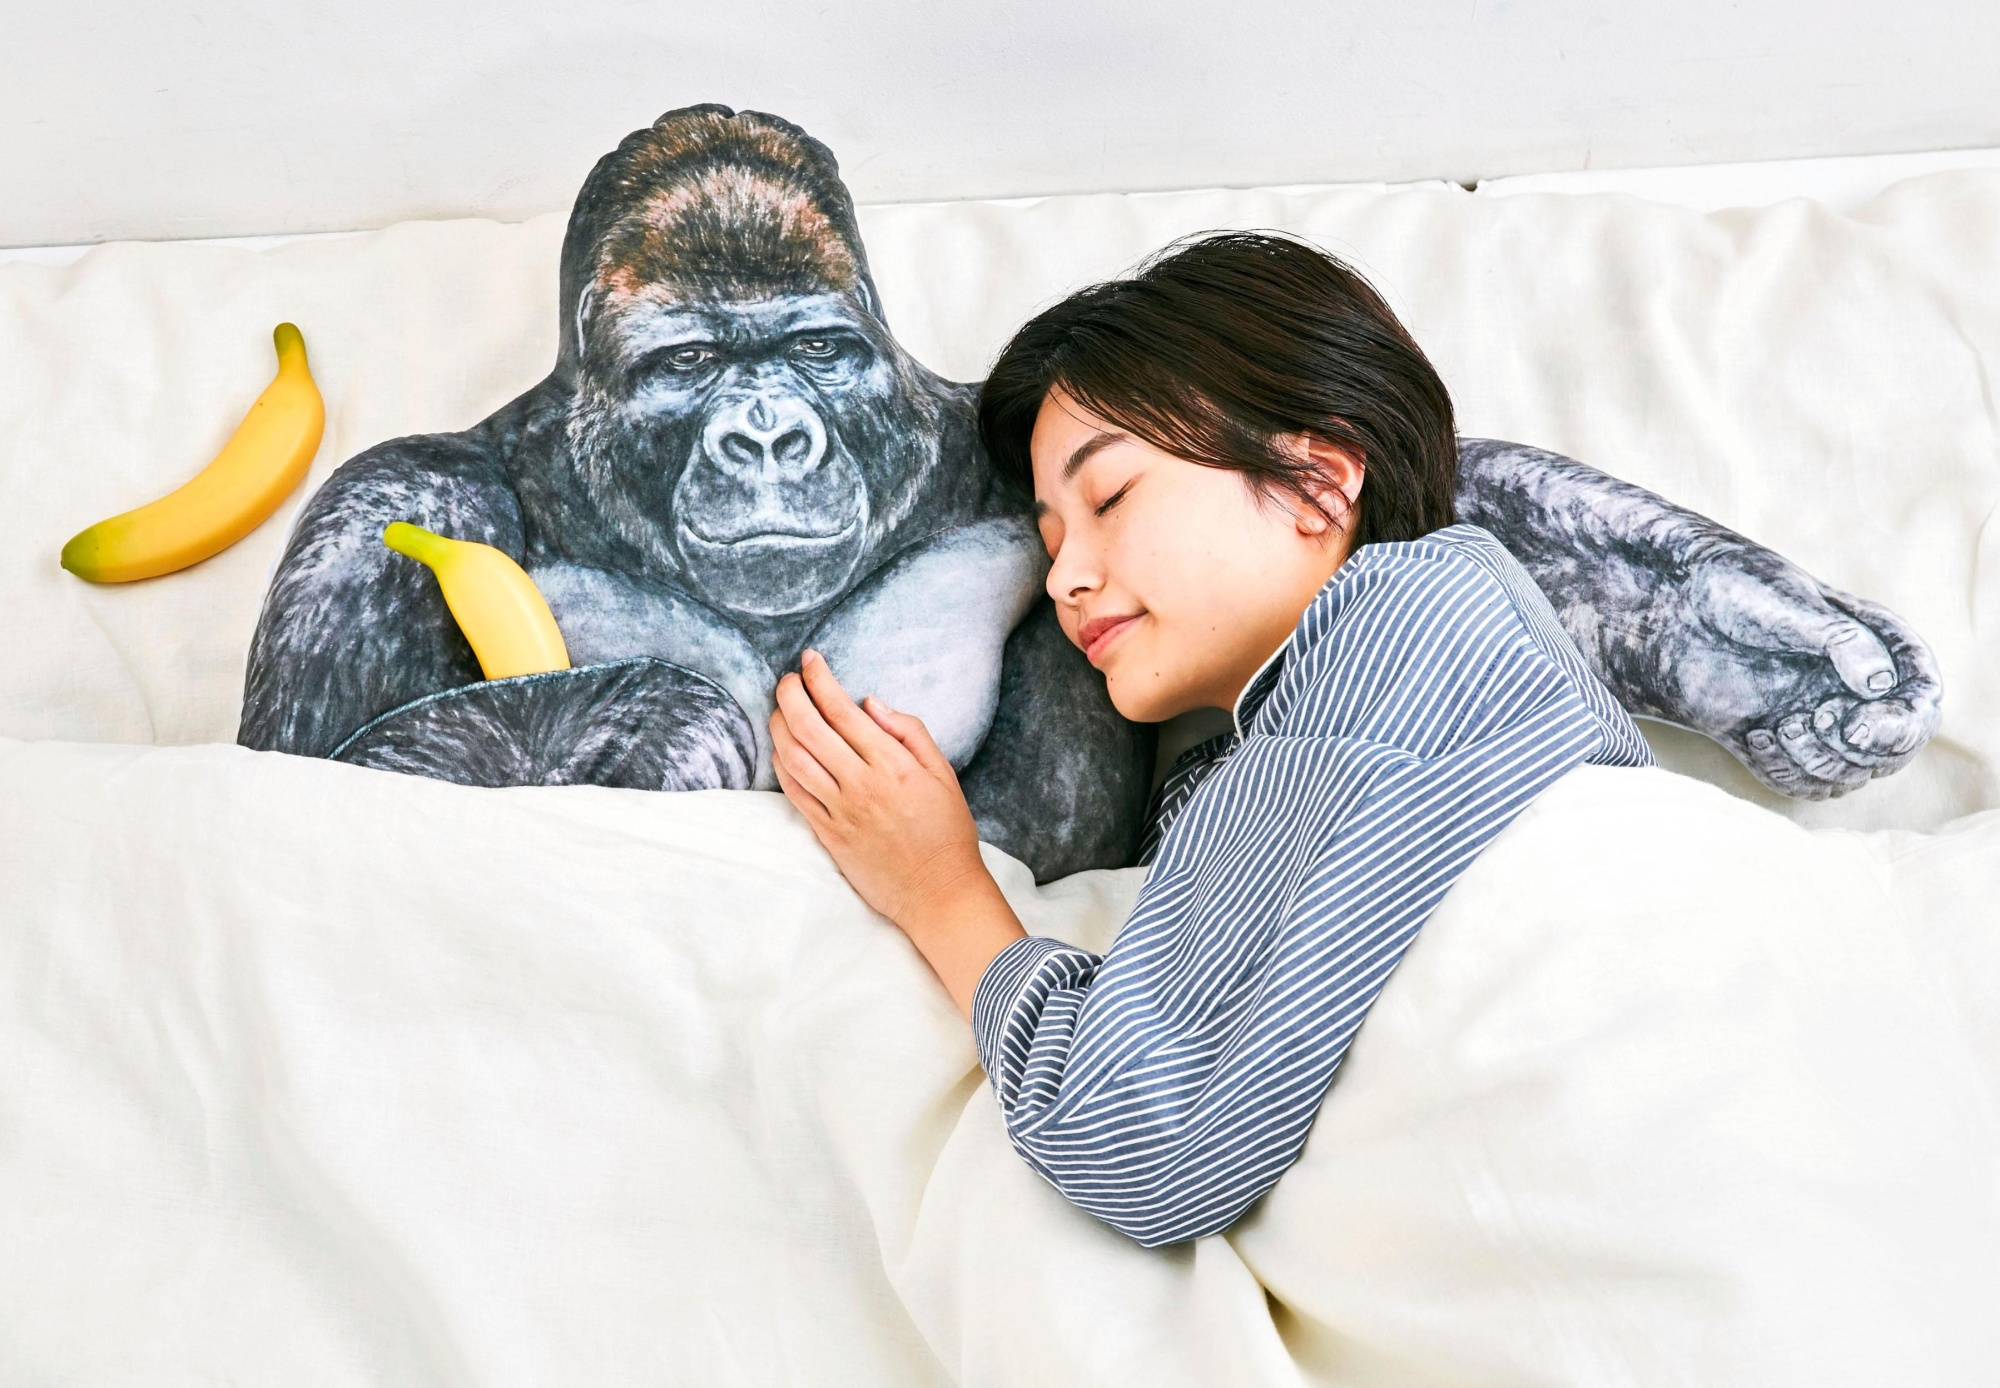 A model lies next to a pillow shaped as Shabani the gorilla. The product based on the popular animal at Higashiyama Zoo and Botanical Gardens in Nagoya is gaining attention on social media. | FELISSIMO CORP. / VIA KYODO